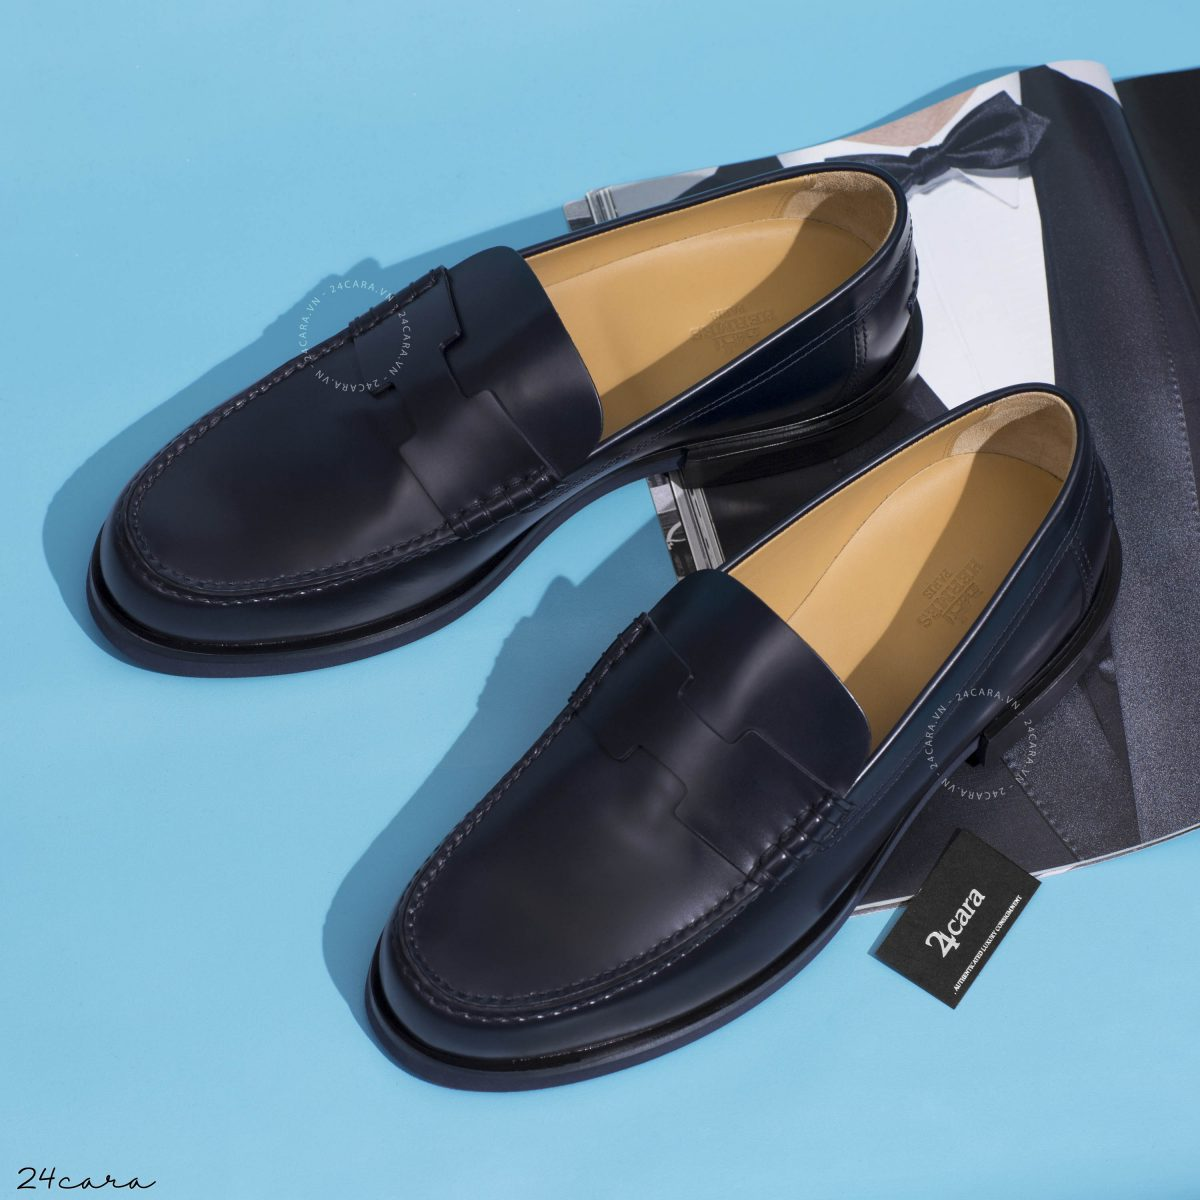 HERMES RONALD TUSCAN LEATHER LOAFER